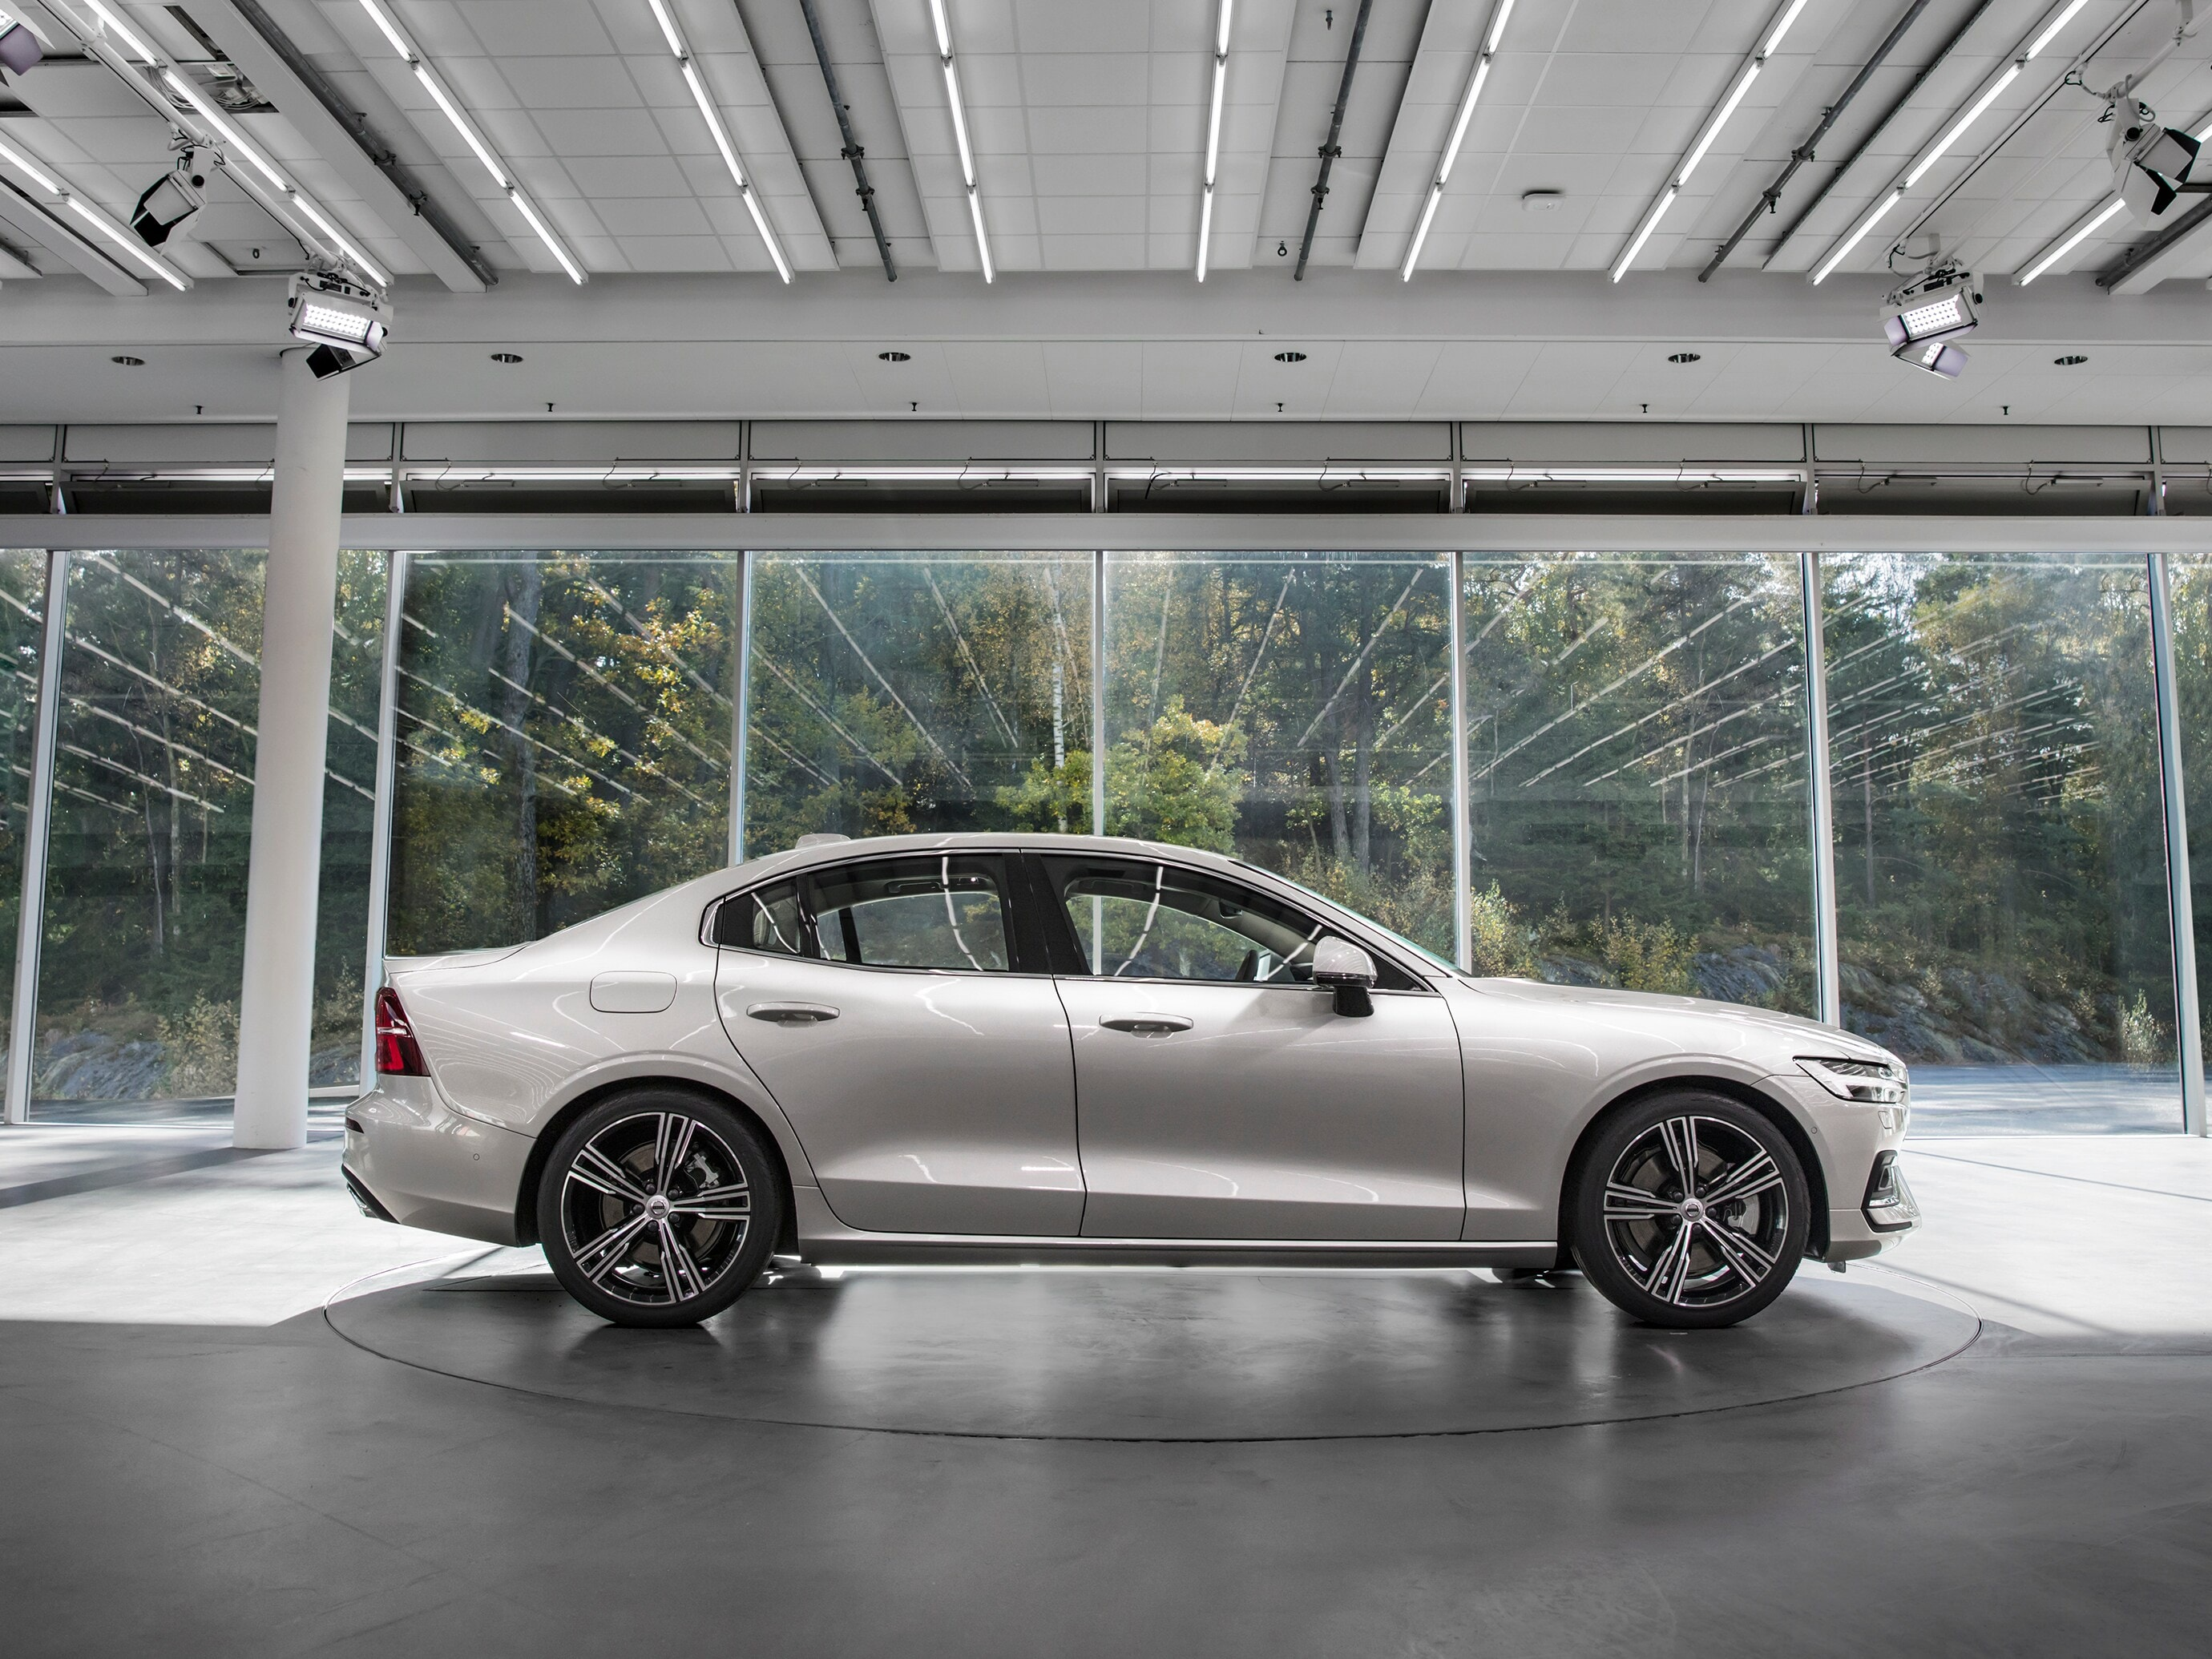 Side view of the Volvo S60 in Volvo Cars' design centre